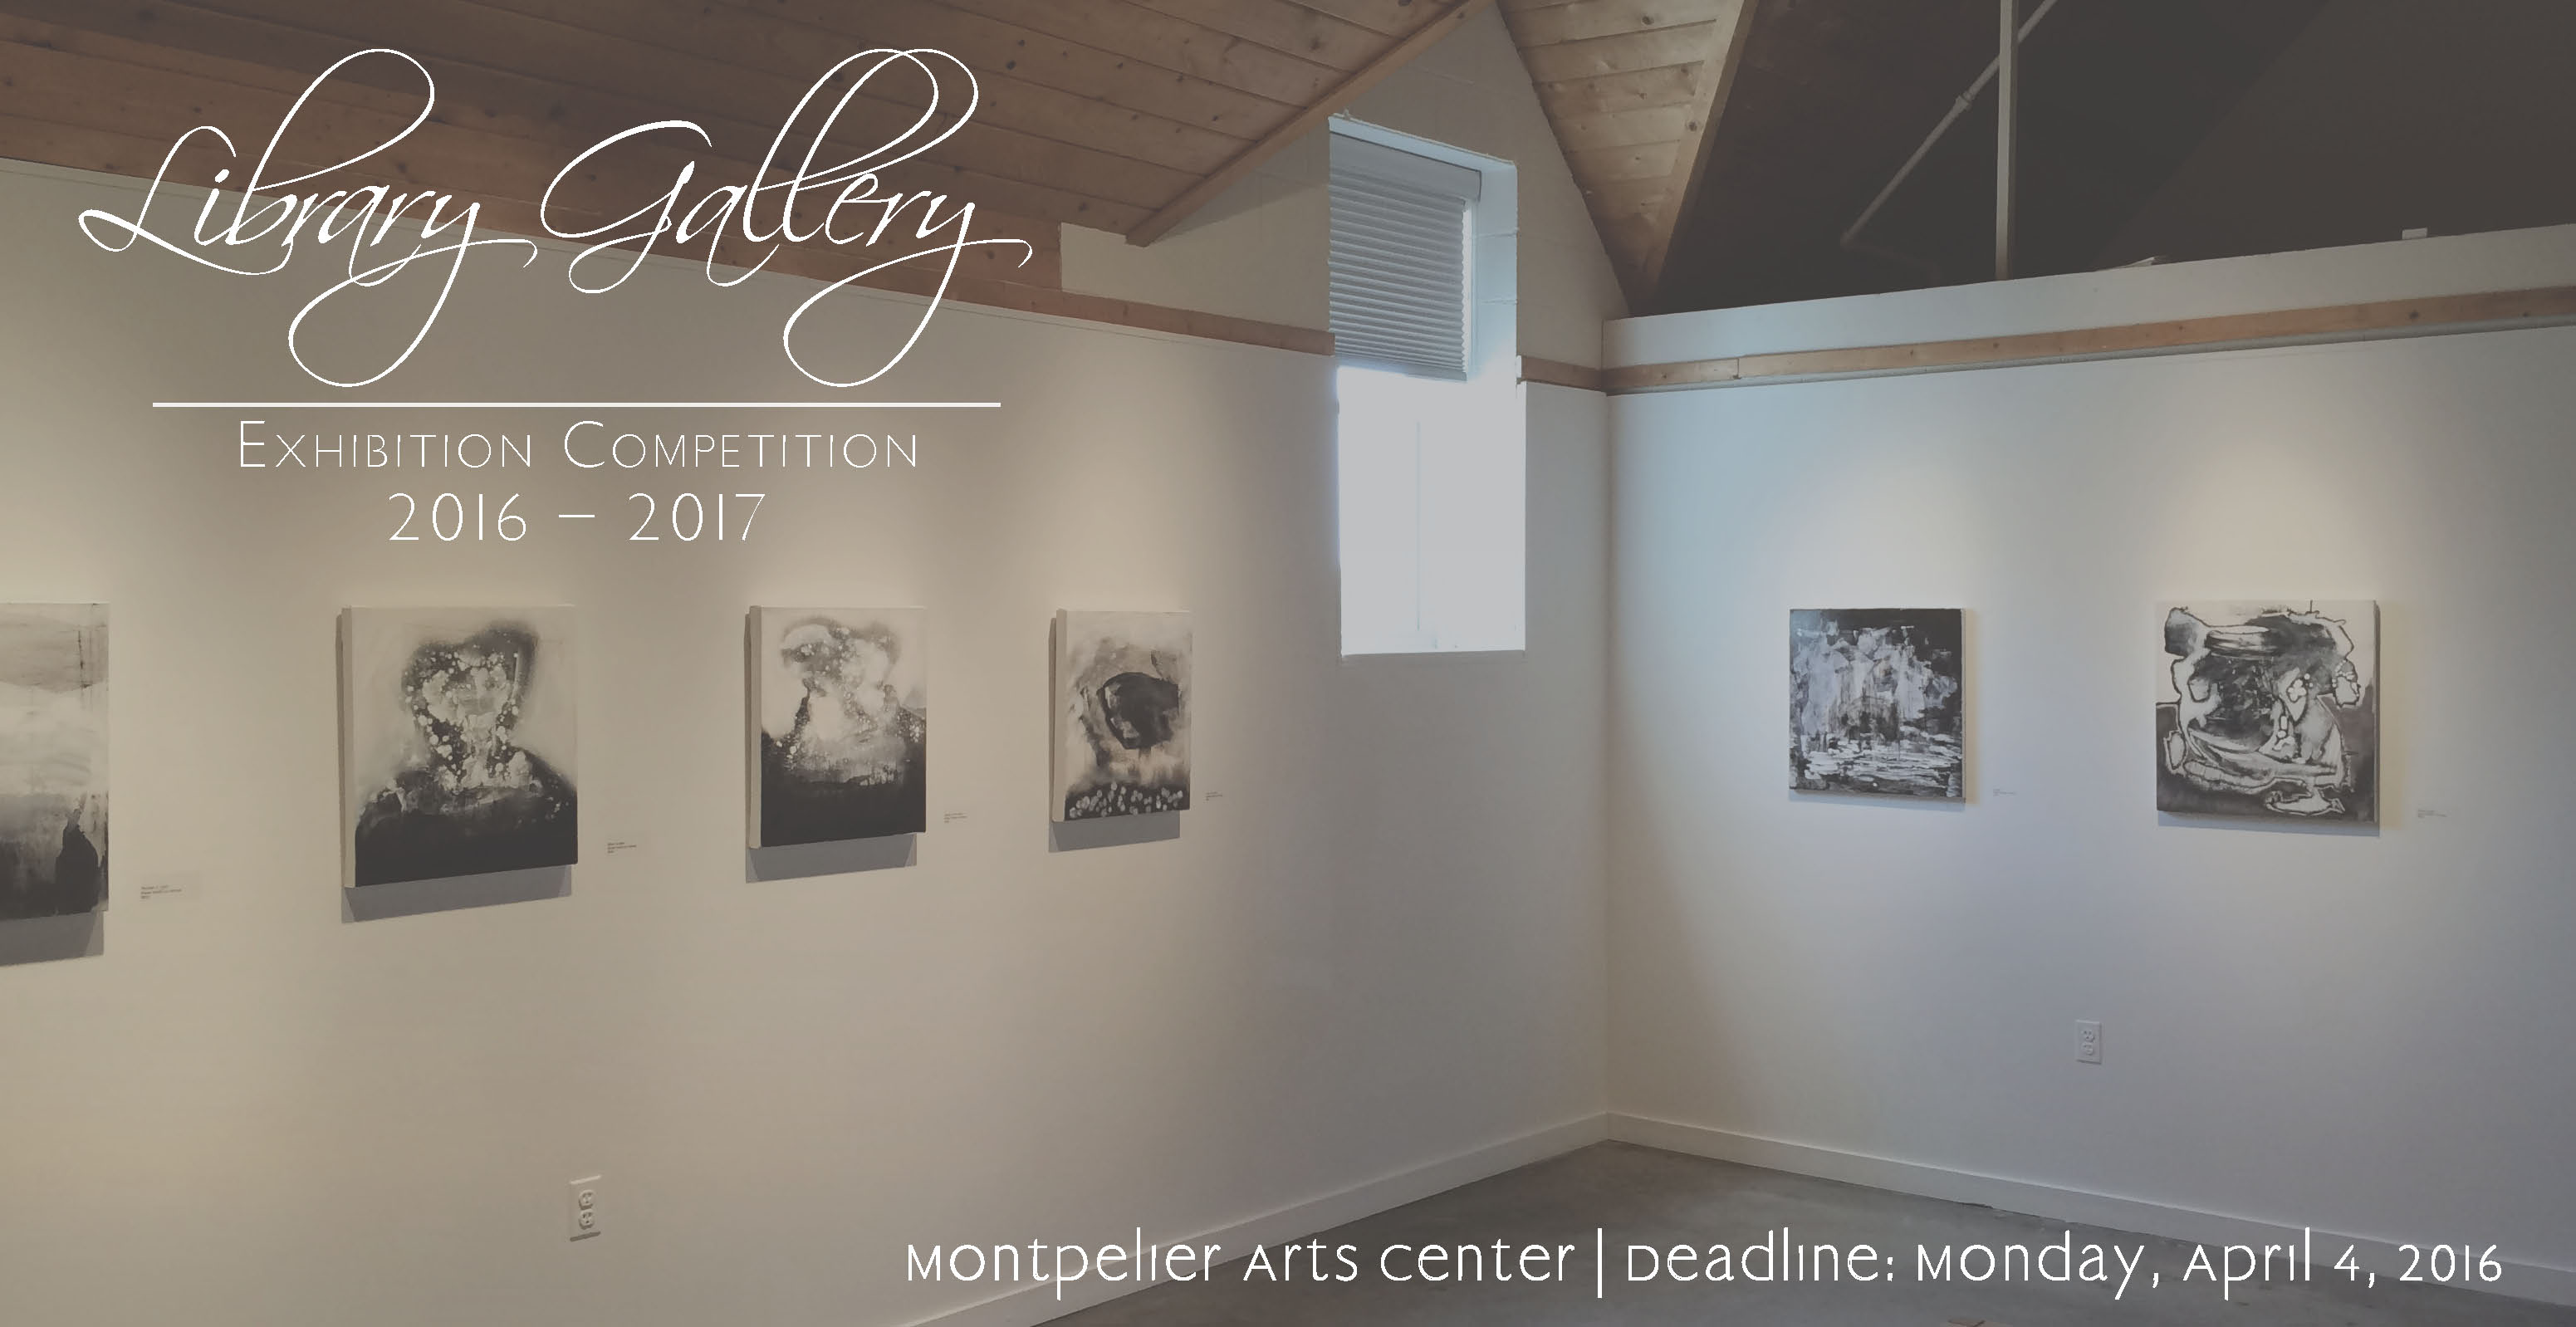 Library Gallery 2016-2017